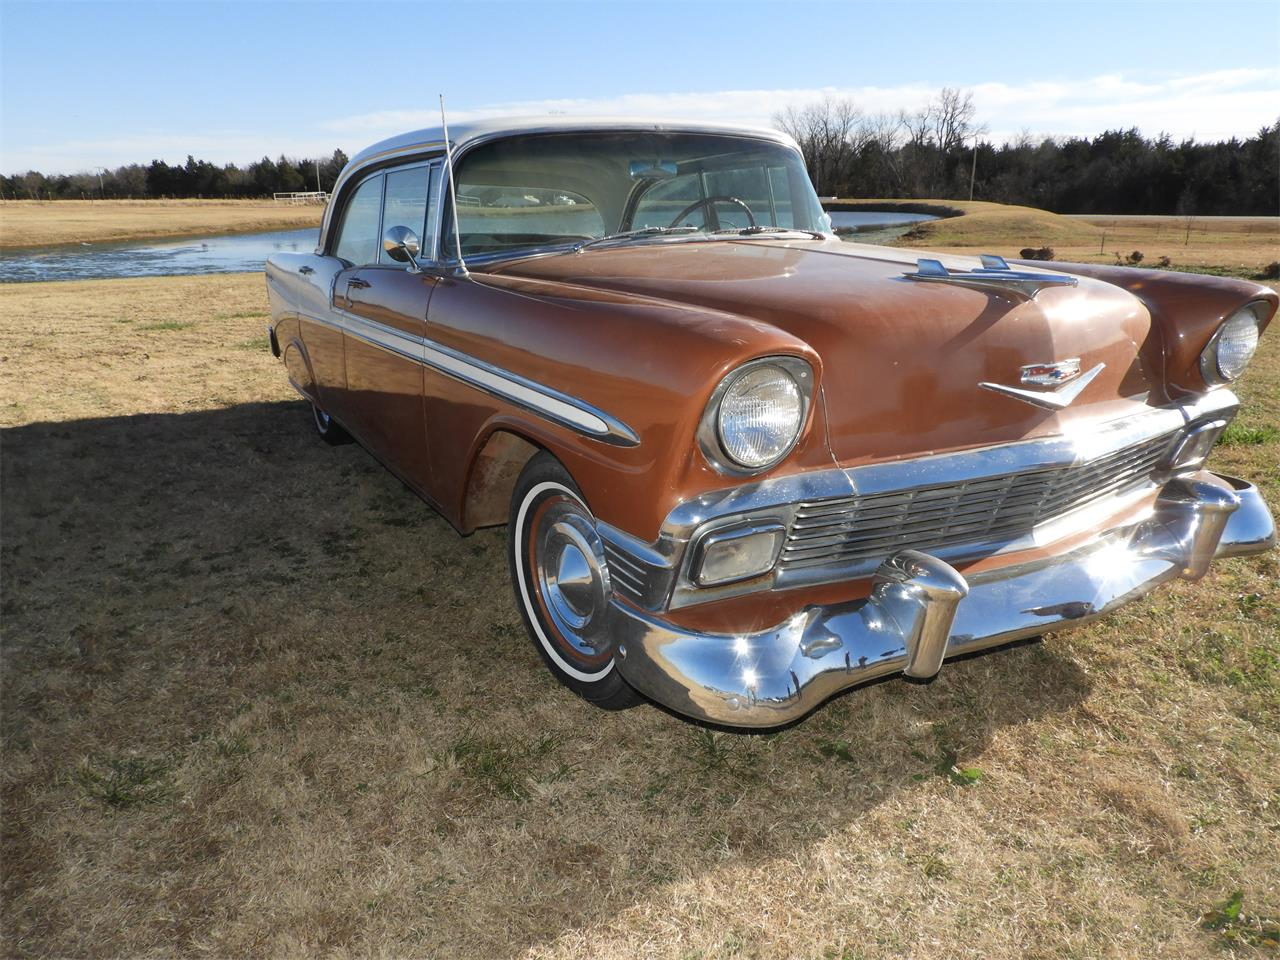 Large Picture of Classic 1956 Chevrolet Bel Air located in Shawnee Oklahoma Auction Vehicle Offered by Ball Auction Service - MHU4